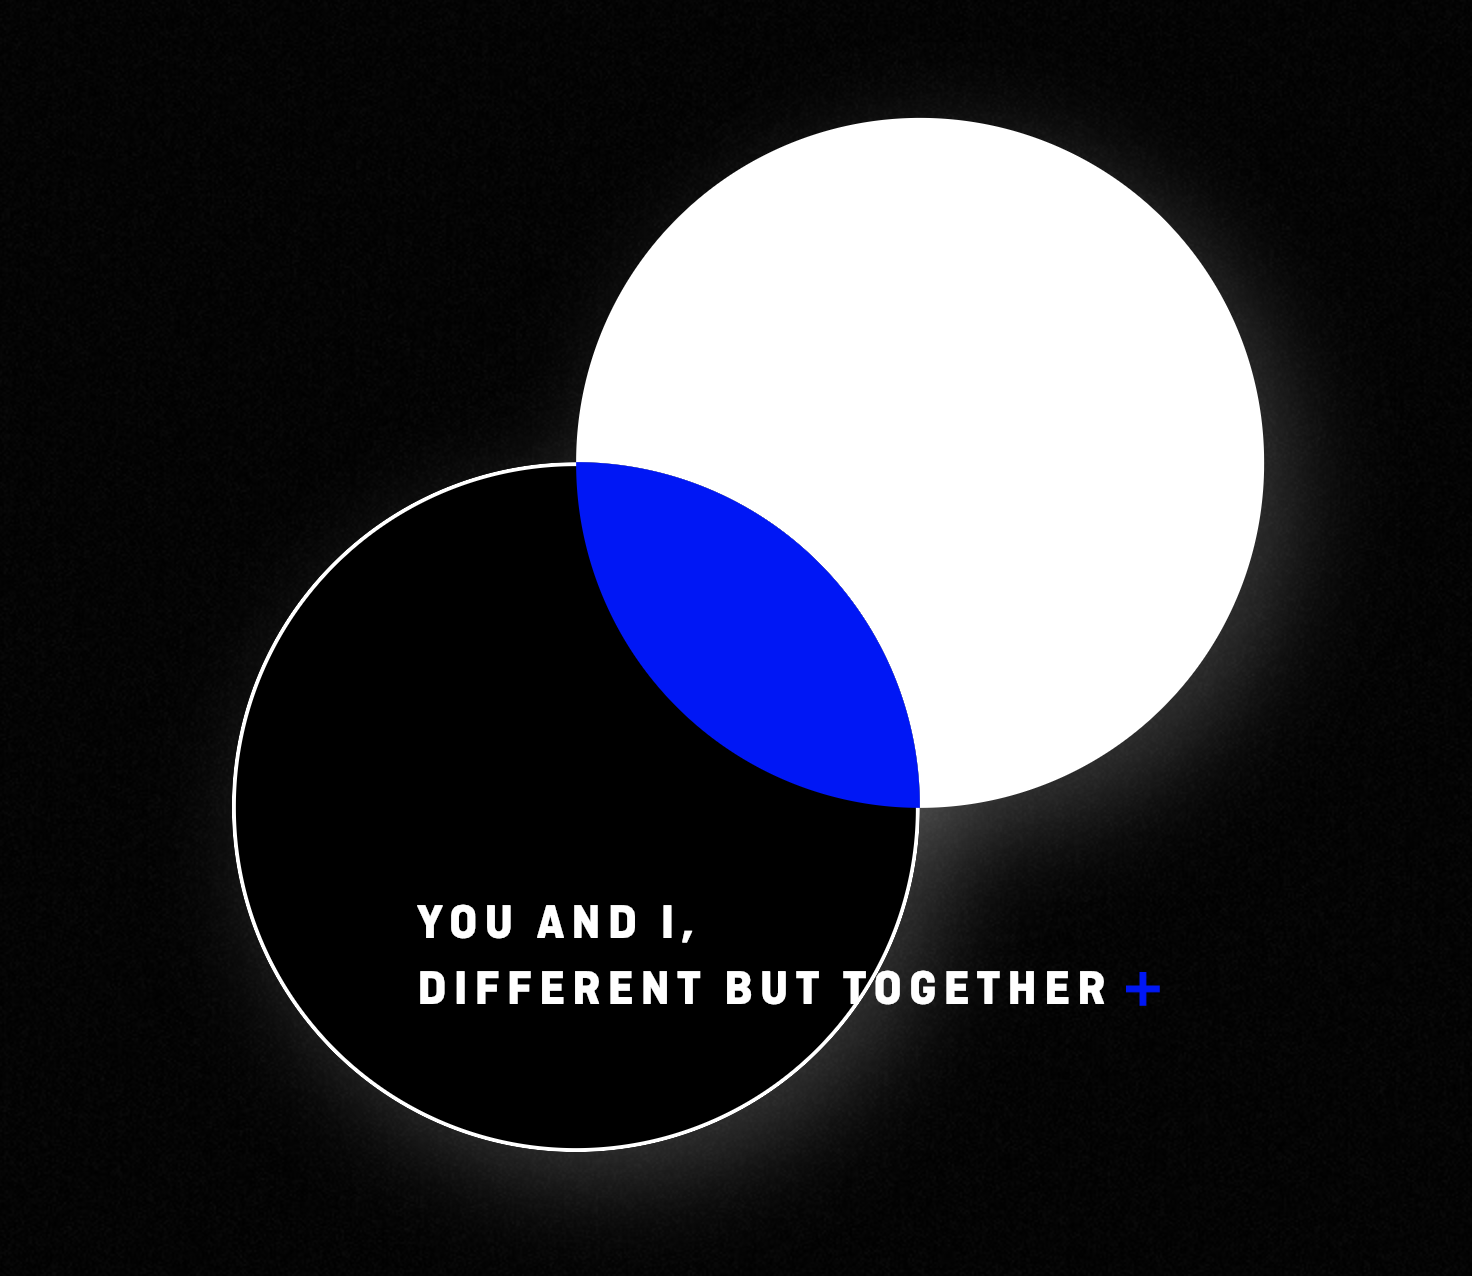 TXT: You and I, different but together. Screengrab from  TXT microsite